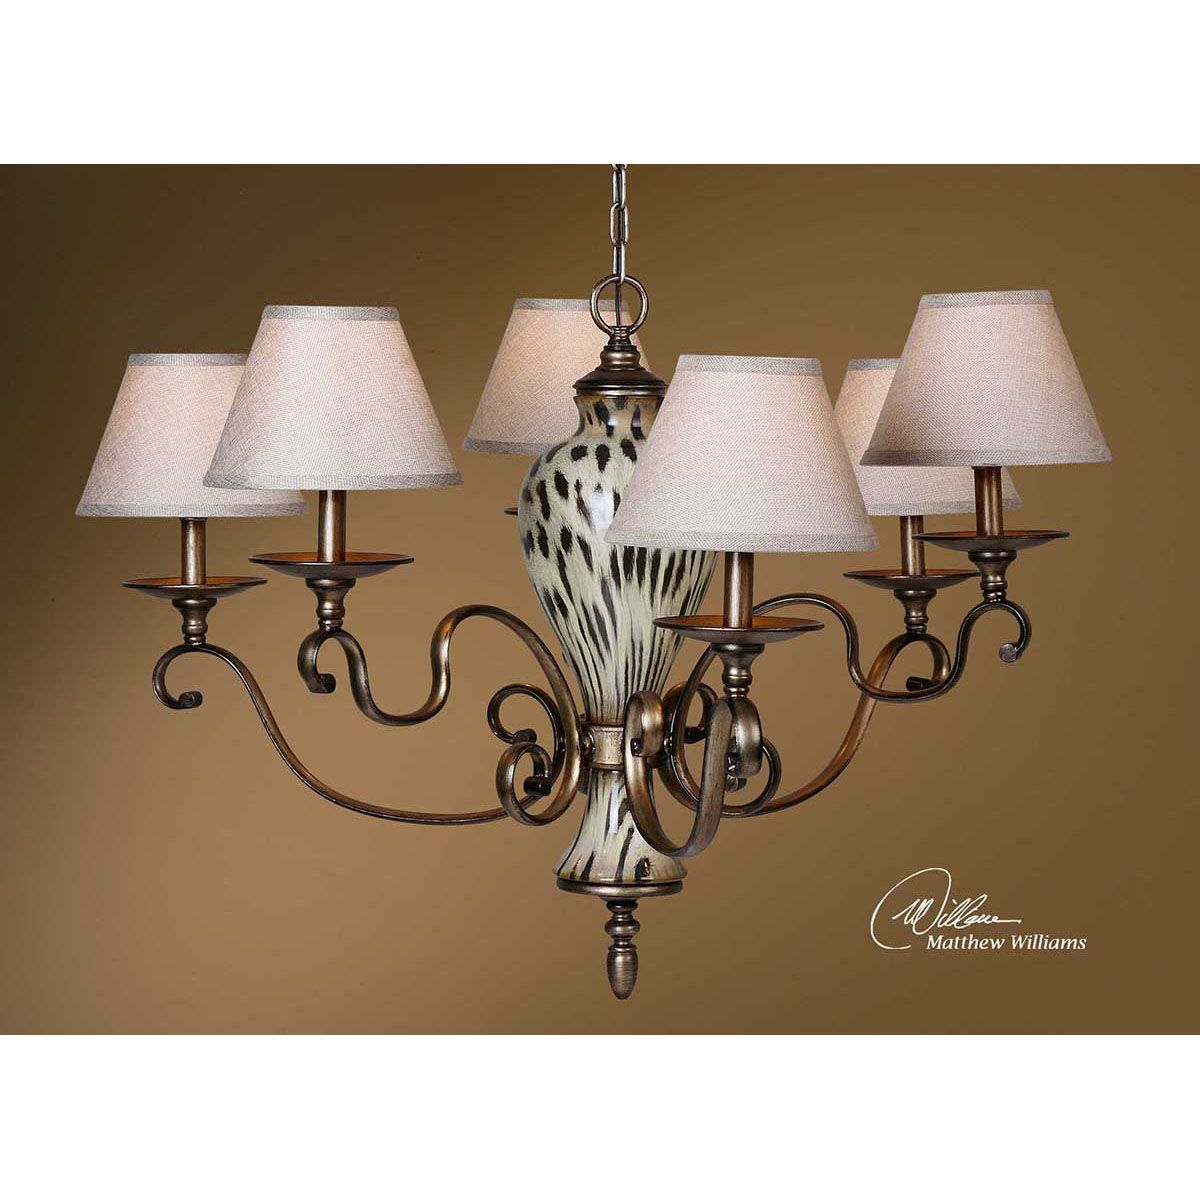 Uttermost malawi 6 light chandelier 21247 uttermost pinterest uttermost malawi 6 light cheetah print ceramic chandelier 21247 lowest price online on all uttermost malawi 6 light cheetah print ceramic chandelier arubaitofo Image collections